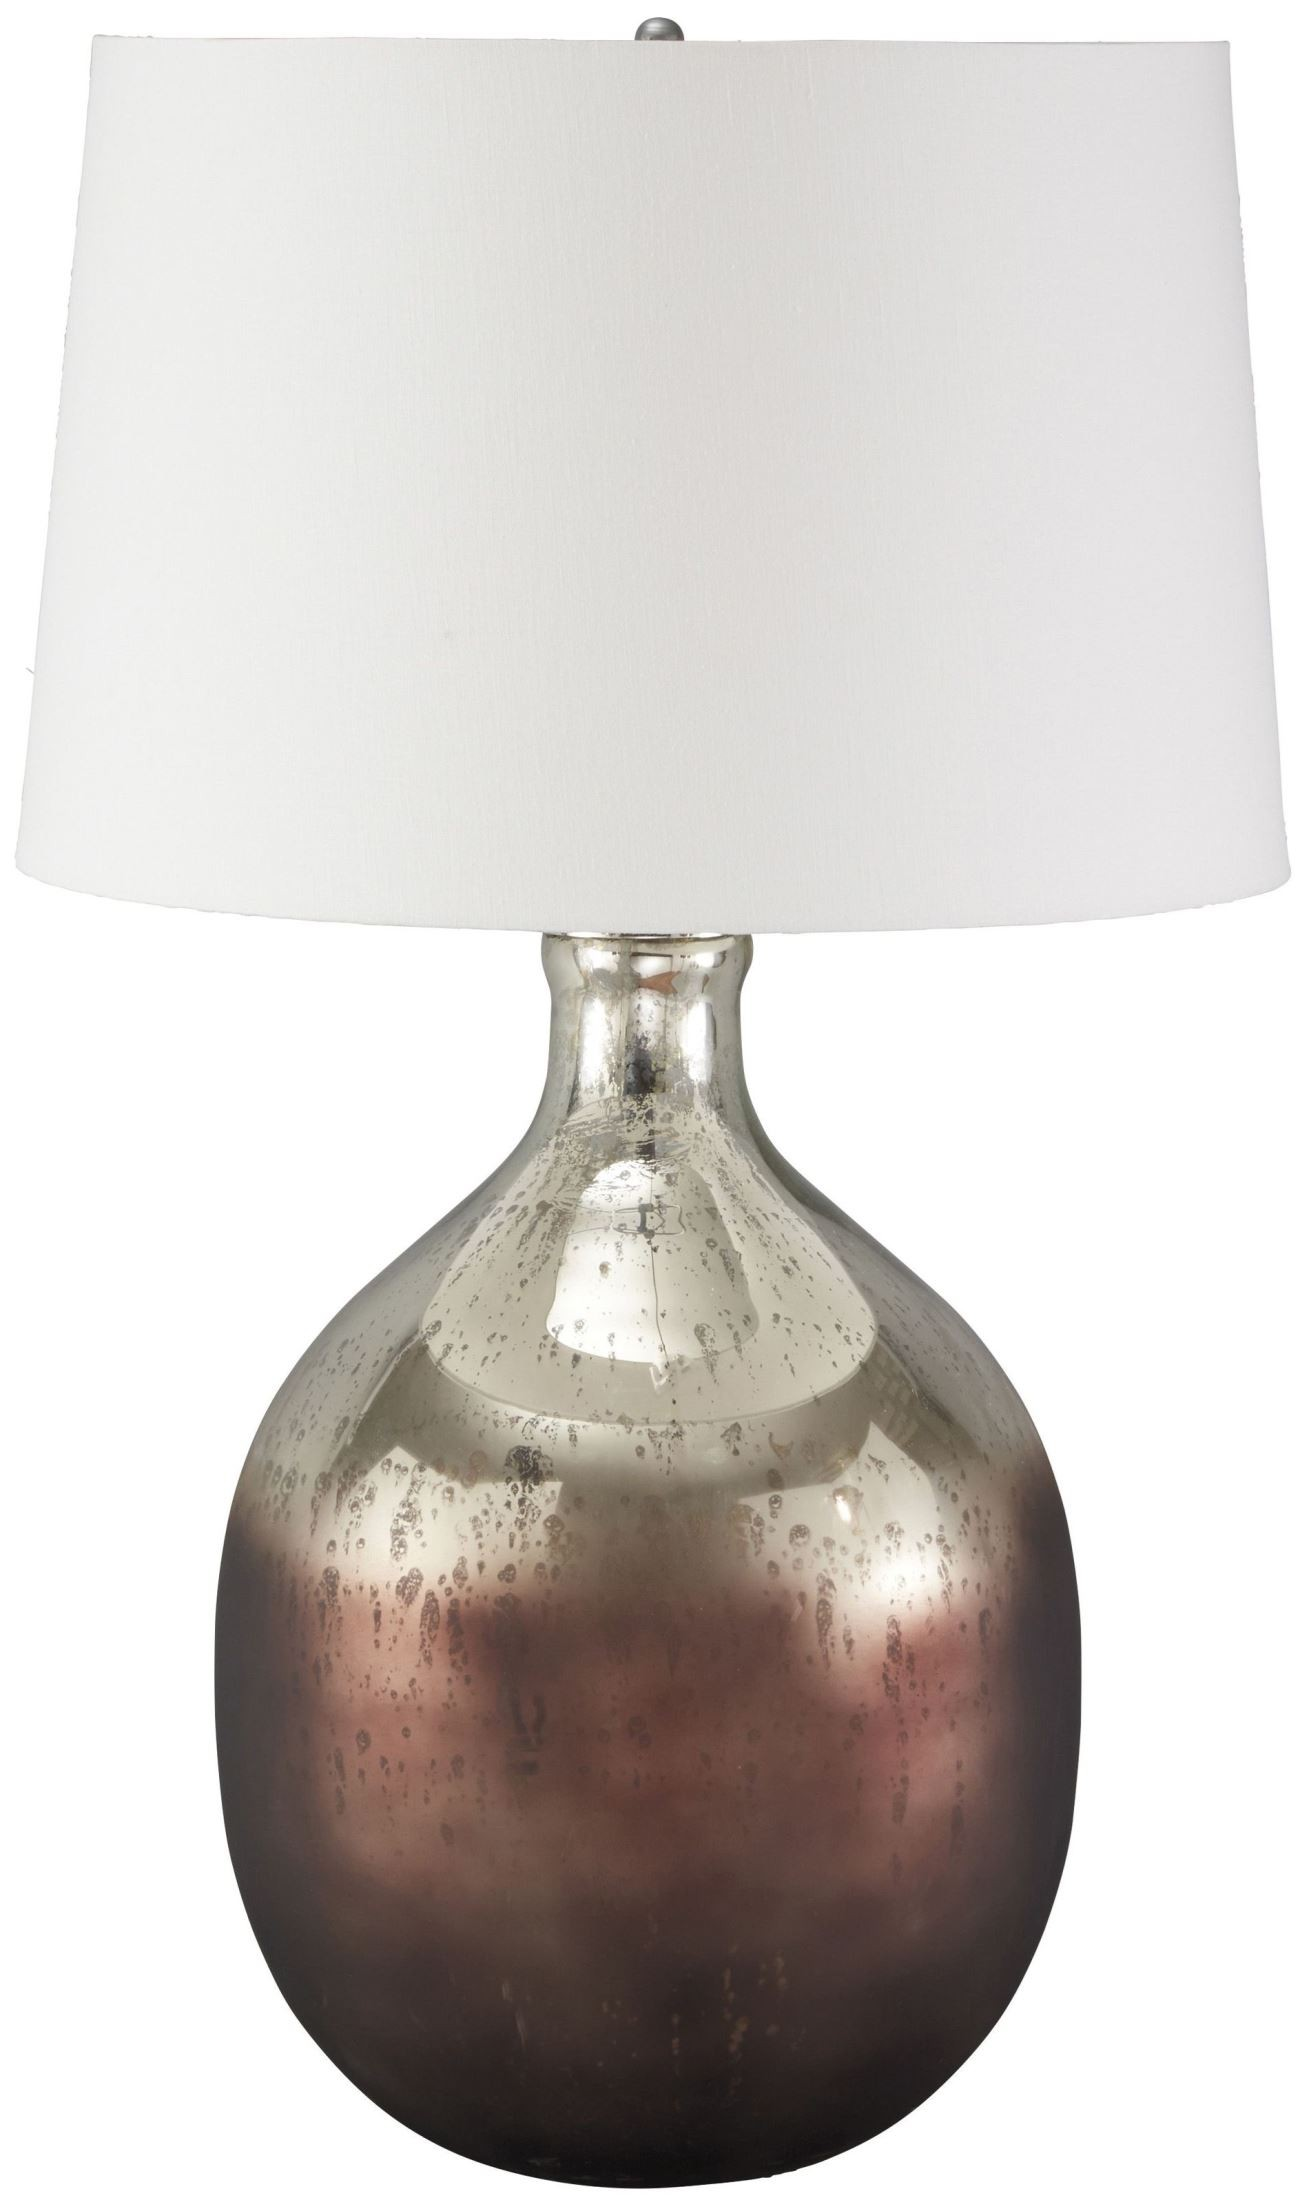 Tabish Mercury Glass And Brown Glass Table Lamp From Ashley L430294 Coleman Furniture